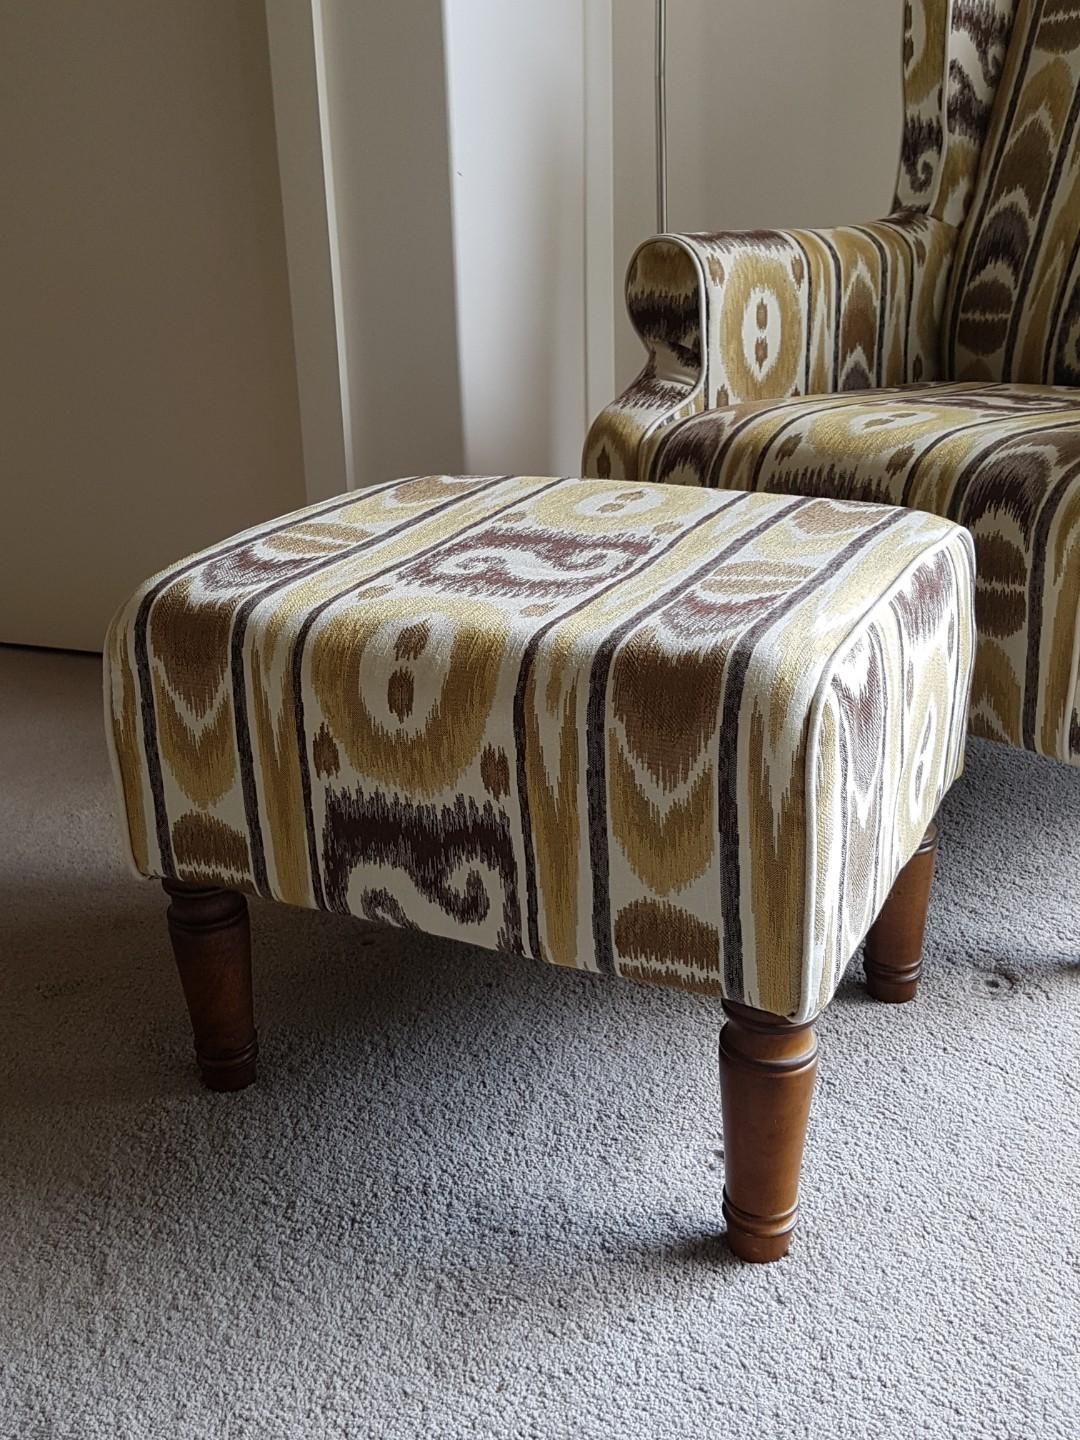 CLASSIC WING BACK CHAIR WITH MATCHING FOOTSTOOL - TURNED TIMBER LEGS